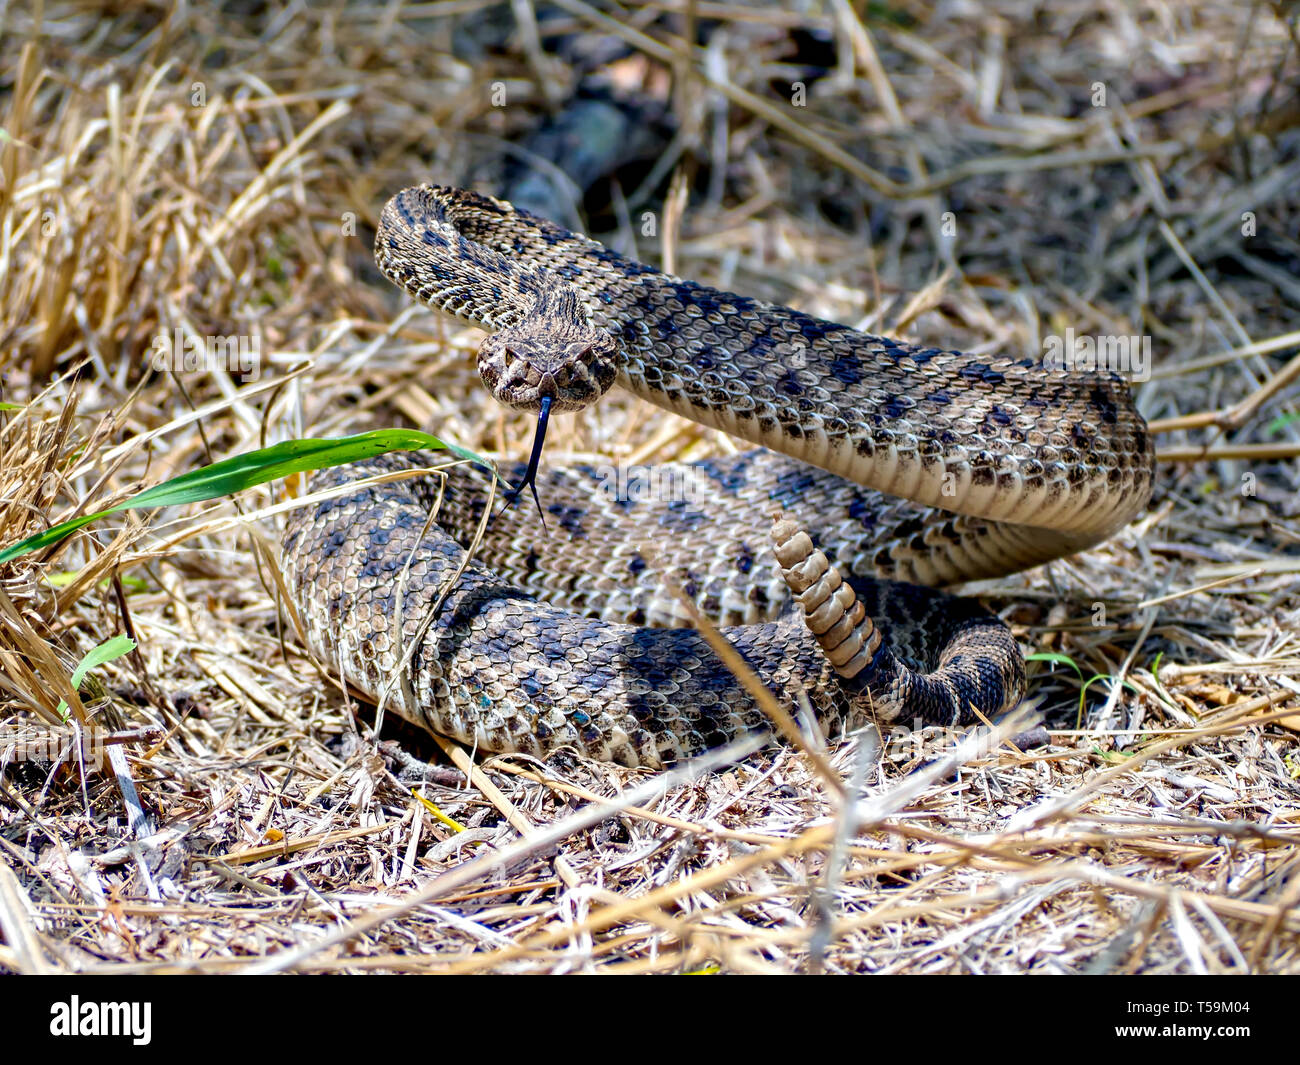 A Western Diamondback Rattlesnake in defensive posture prepares to strike at a perceived threat. Oso Bay Wetlands Preserve & Learning Center. Stock Photo